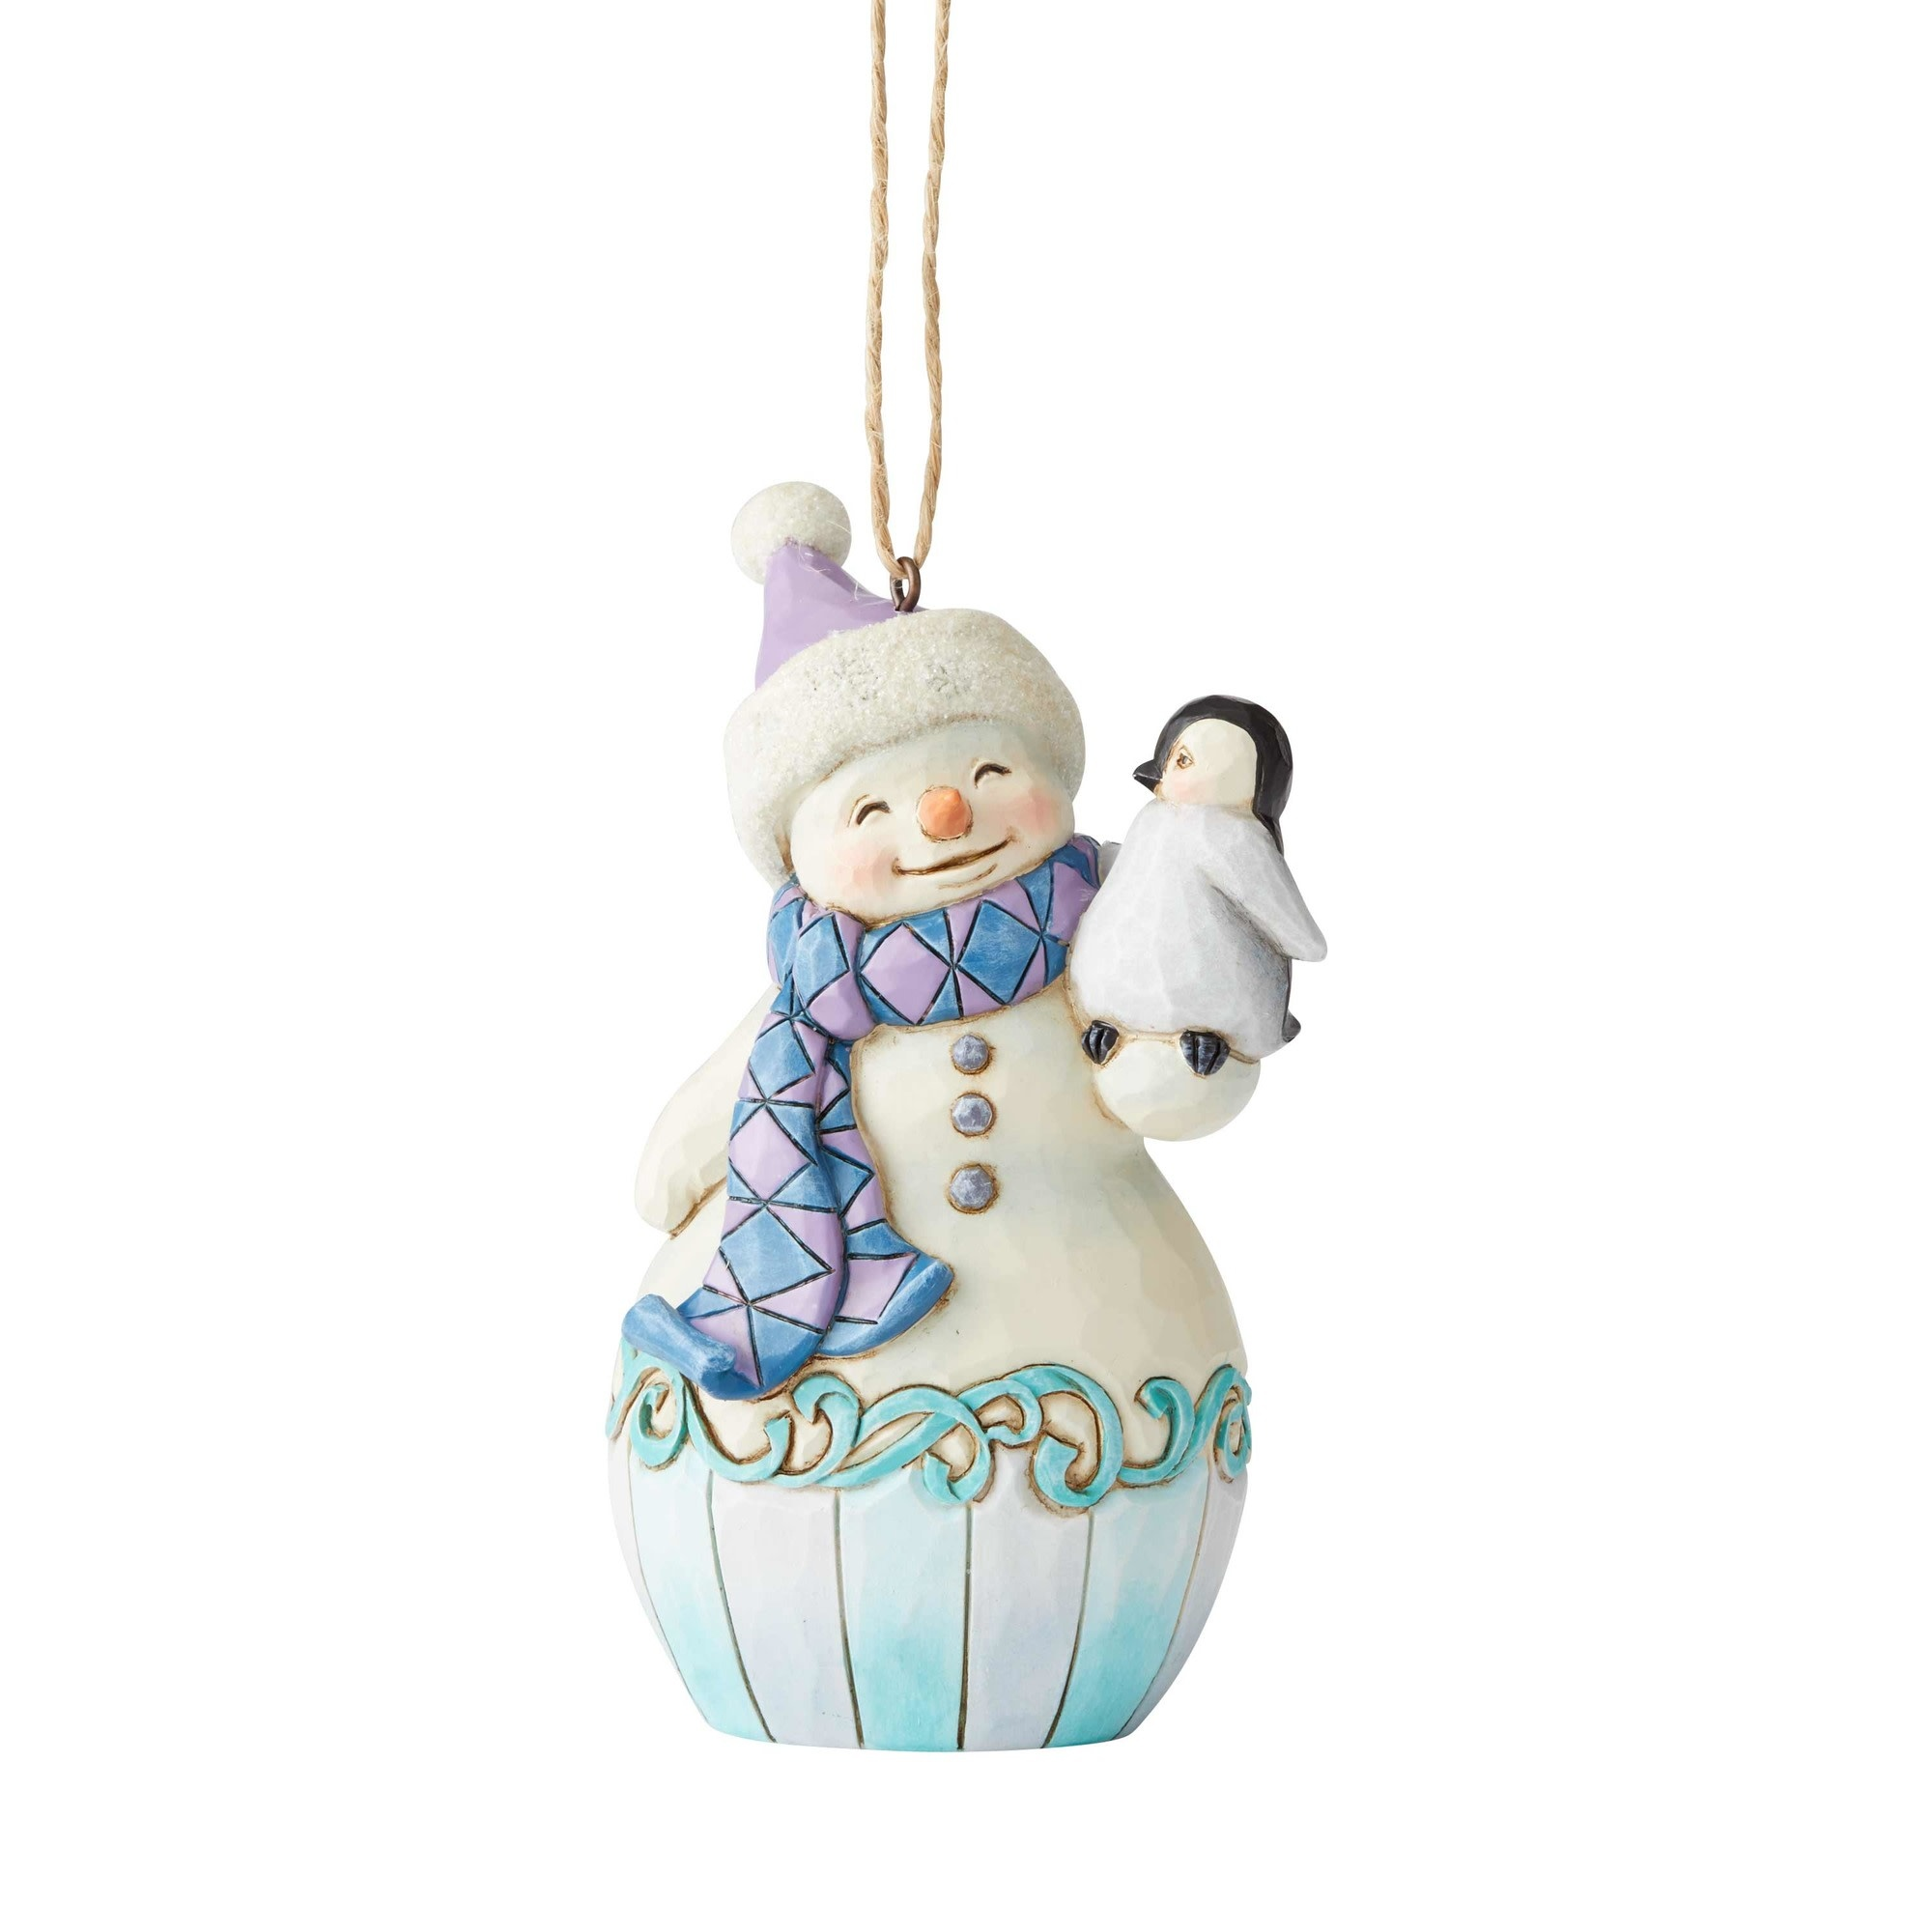 Jim Shore Snowman with Penguin Ornament